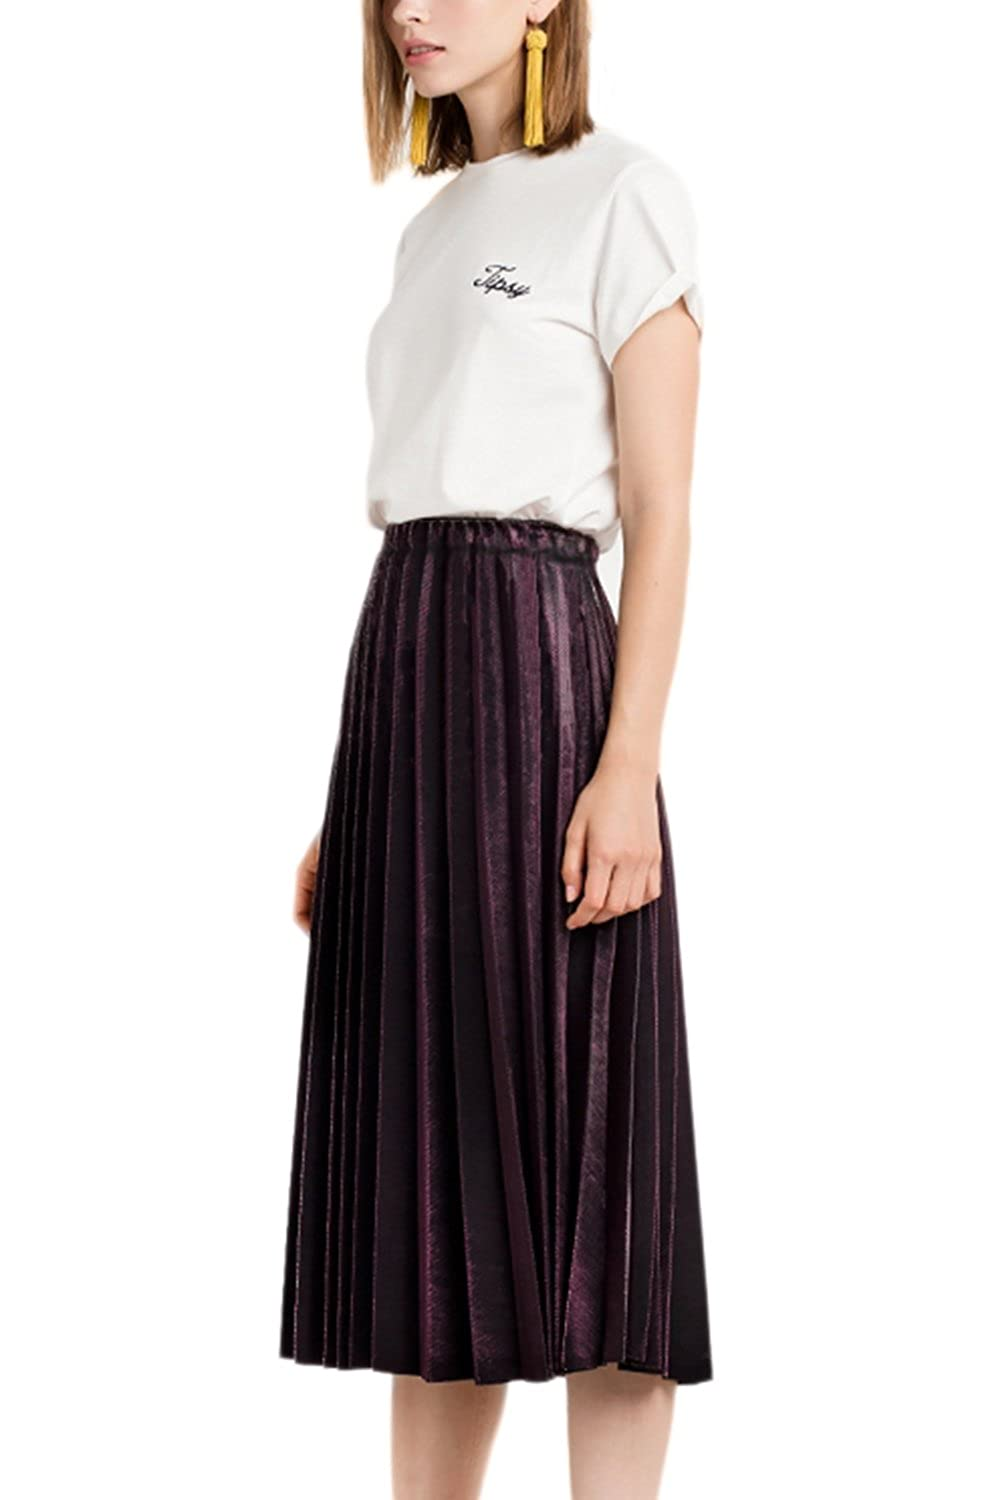 Women Solid High Waist Pleated Fit And Flare Swing Velvet Maxi Skirt CANZ1023-Black-F